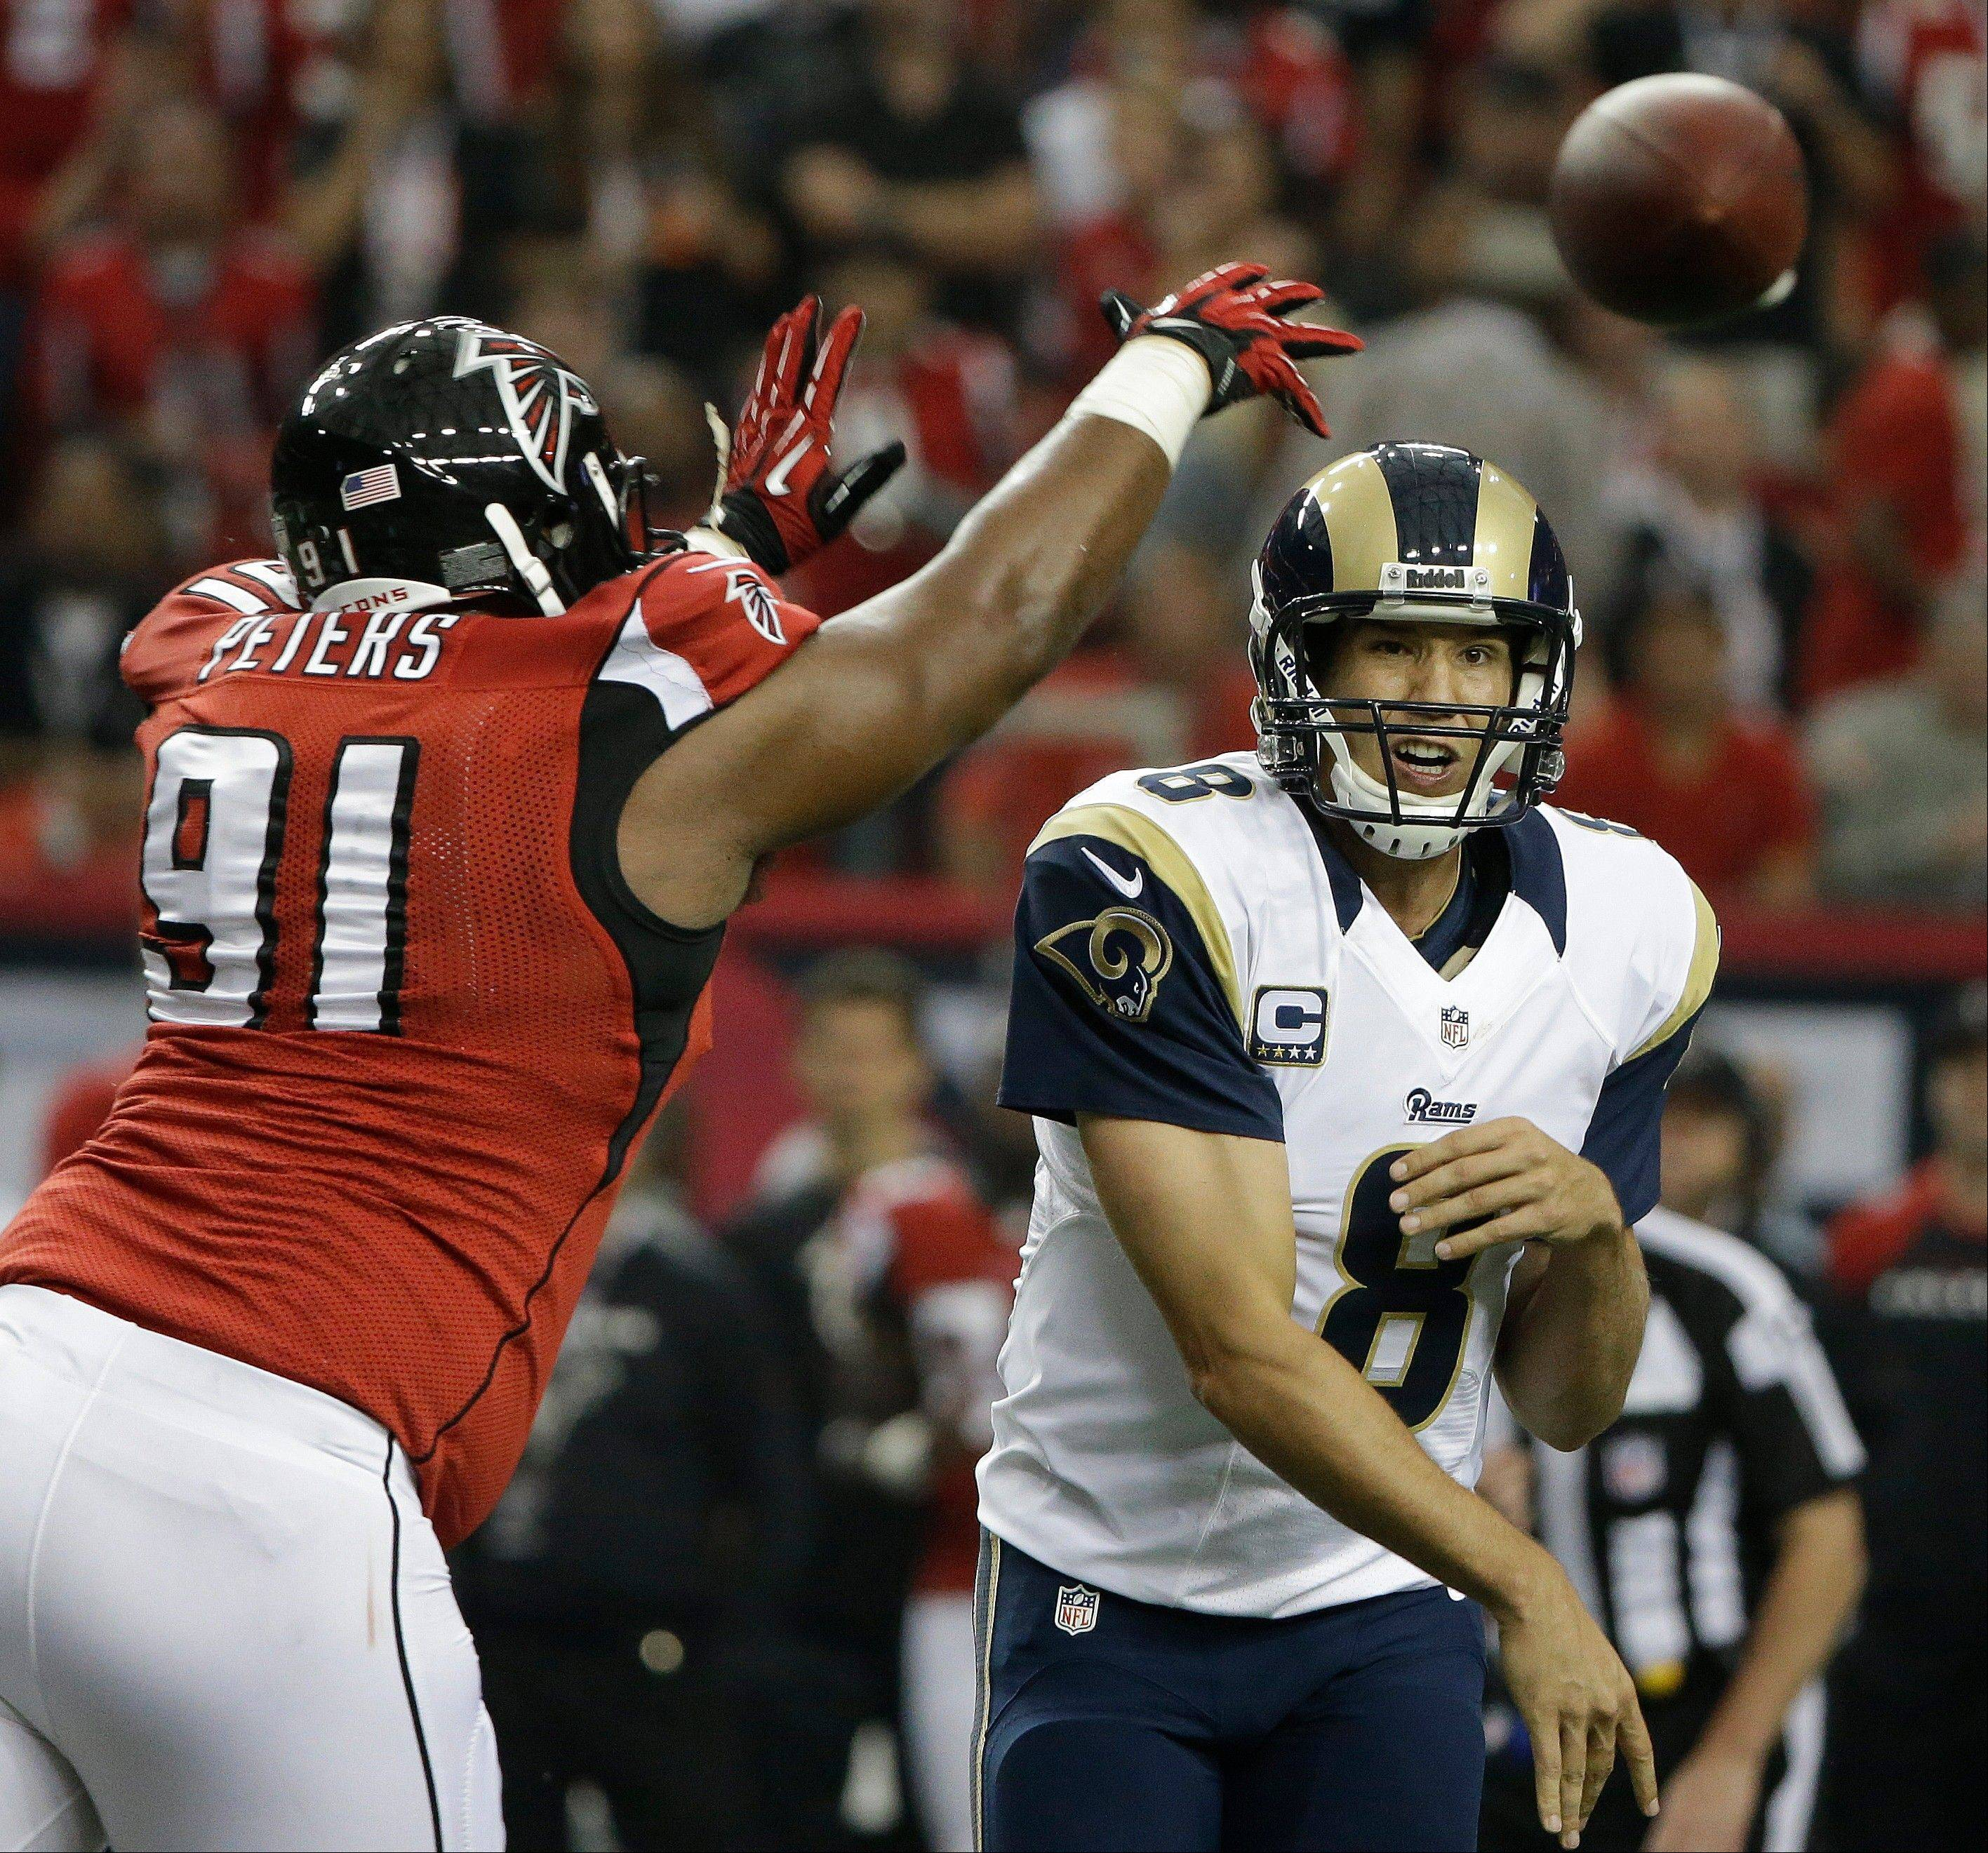 St. Louis Rams quarterback Sam Bradford (8) throws under pressure from Atlanta Falcons defensive tackle Corey Peters (91) during the first half of an NFL football game, Sunday, Sept. 15, 2013, in Atlanta.